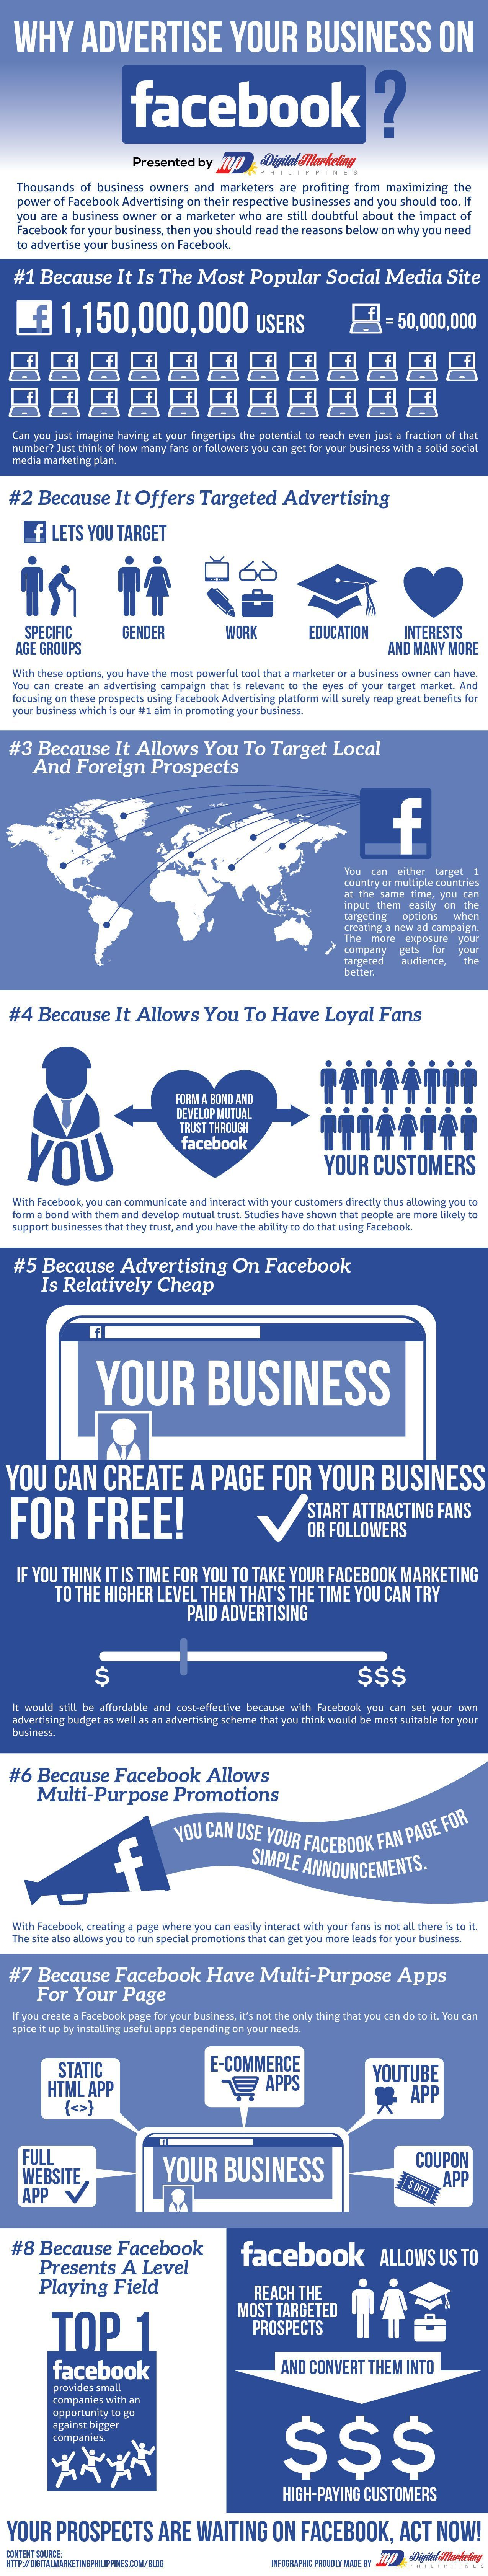 How Can I Advertise My Business On Facebook How To Advertise Your Business On Facebook Advertise My Business Advertise Your Business Advertising